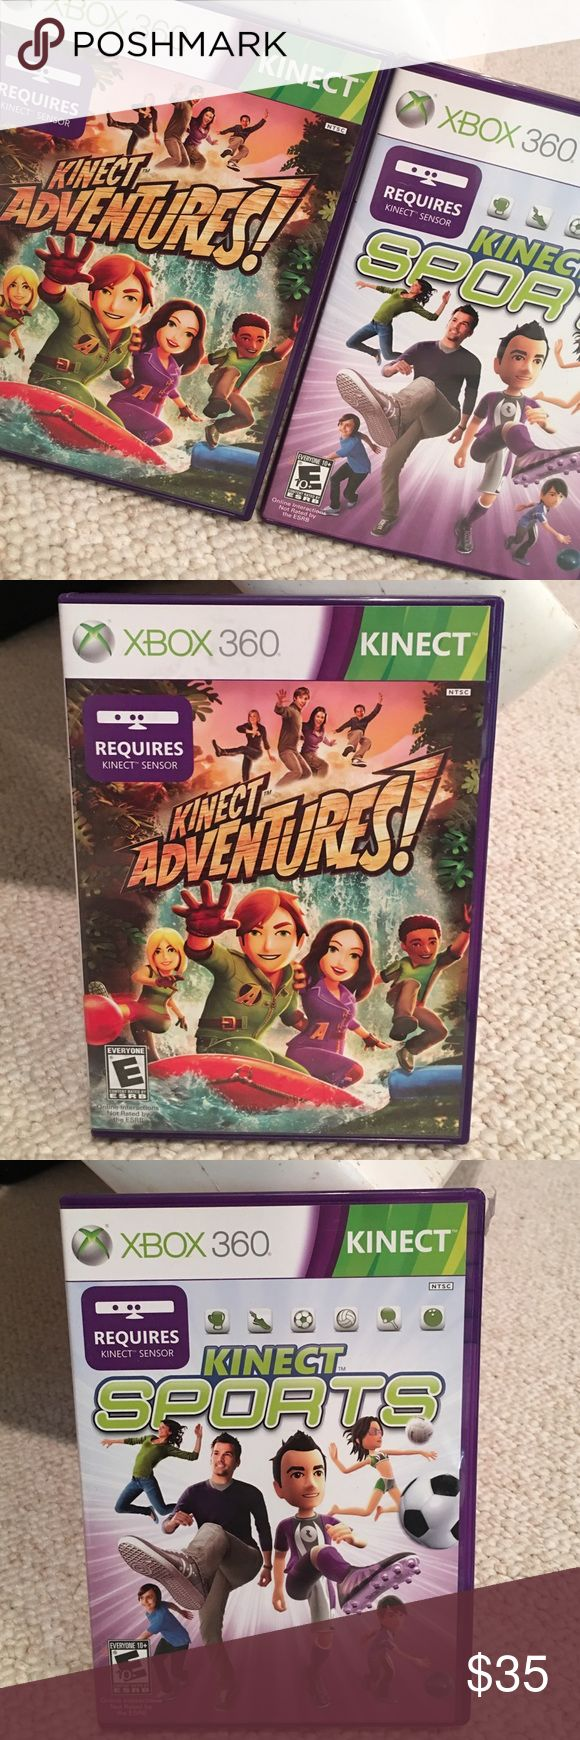 Xbox 360 Game Bundle Kinect Sports and Kinect Adventure! Both are super fun. Must have Kinect for Xbox 360 Other